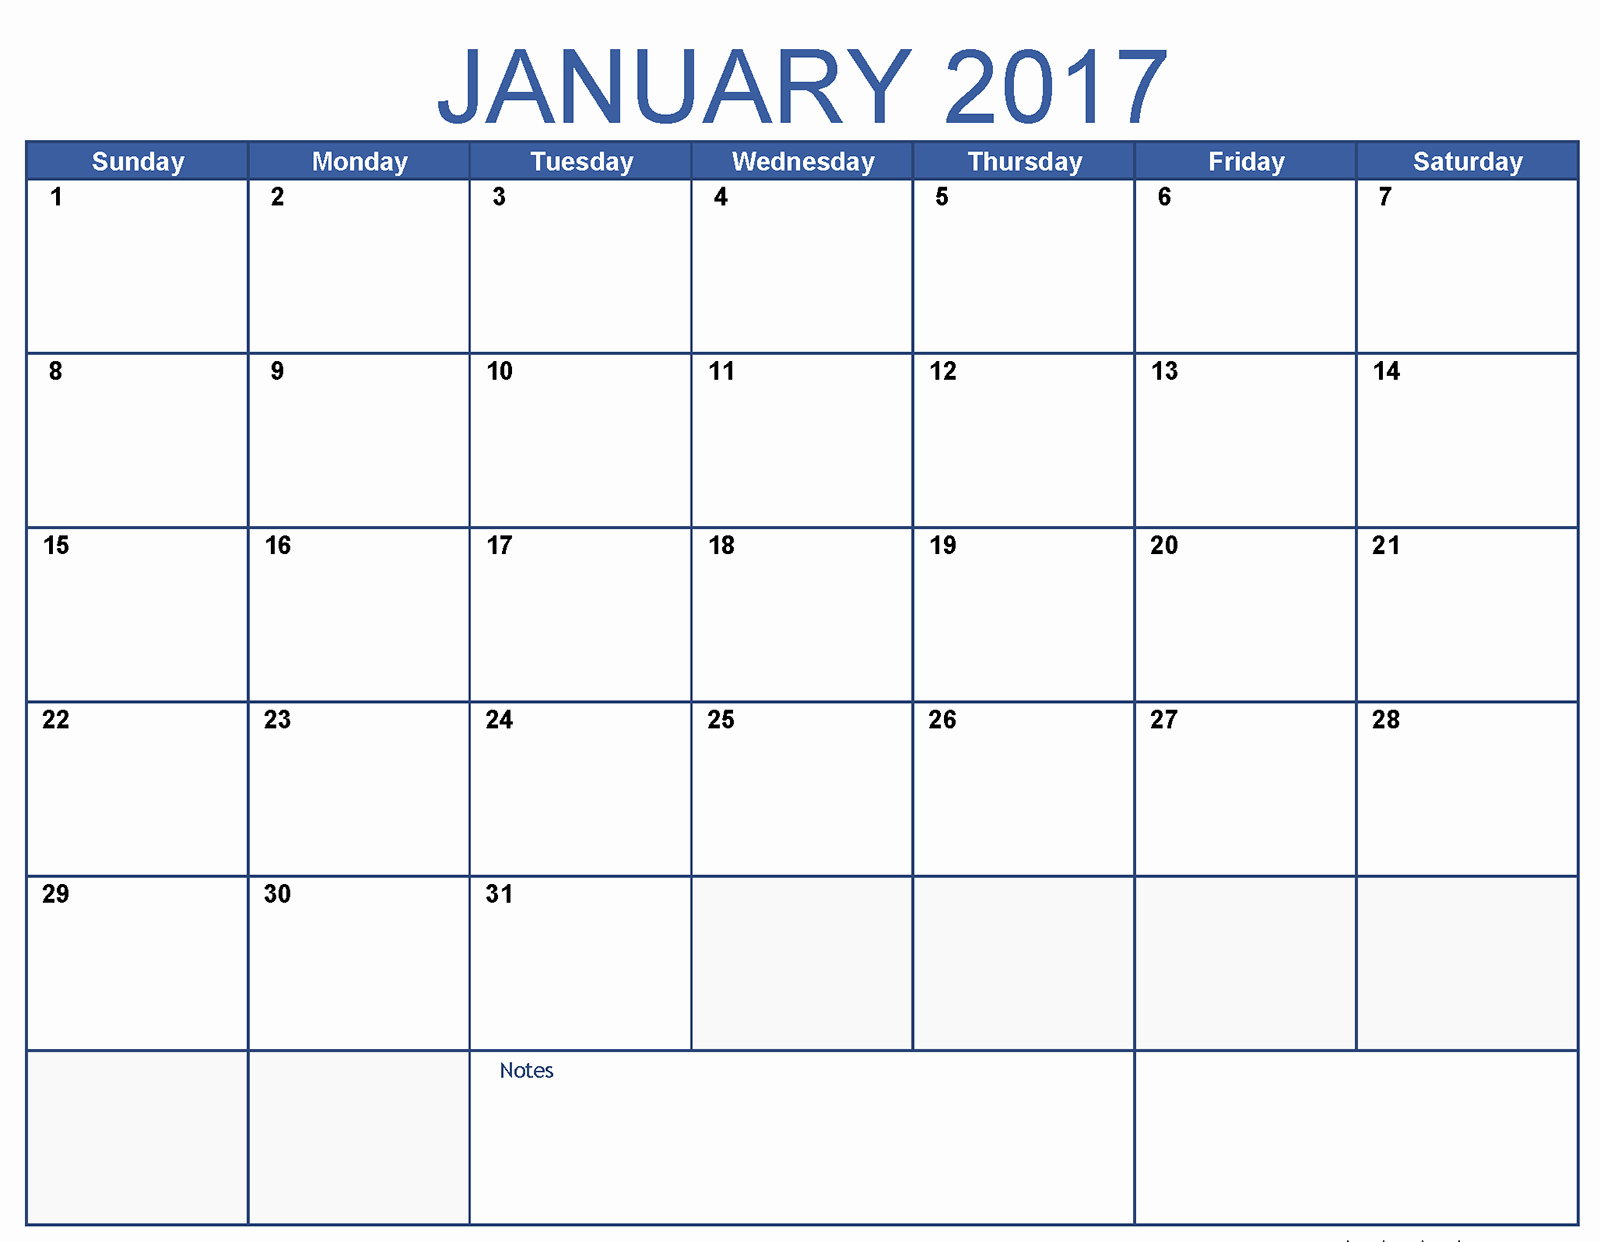 Free 2017 Printable Calendar Word Beautiful January 2017 Word Calendar Wordcalendar